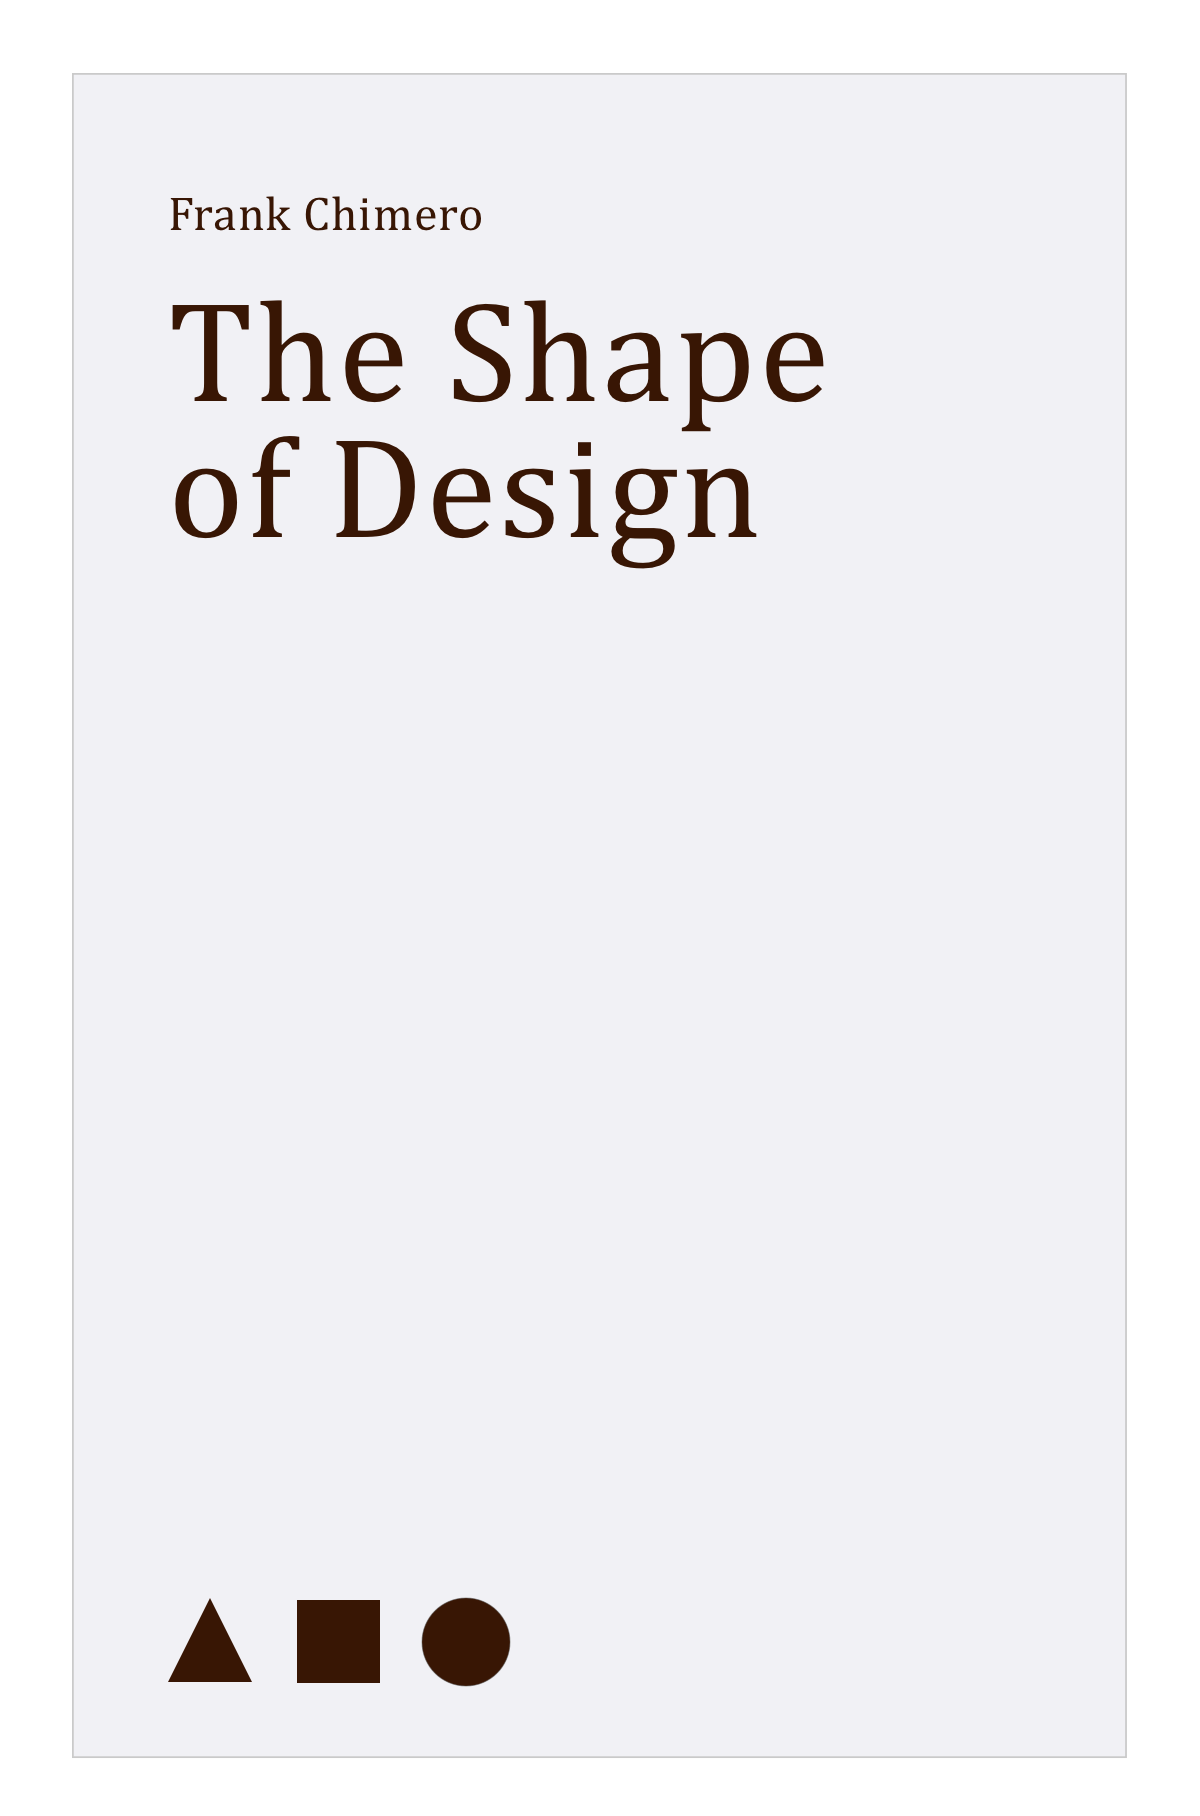 Frank Chimero; The Shape of Design